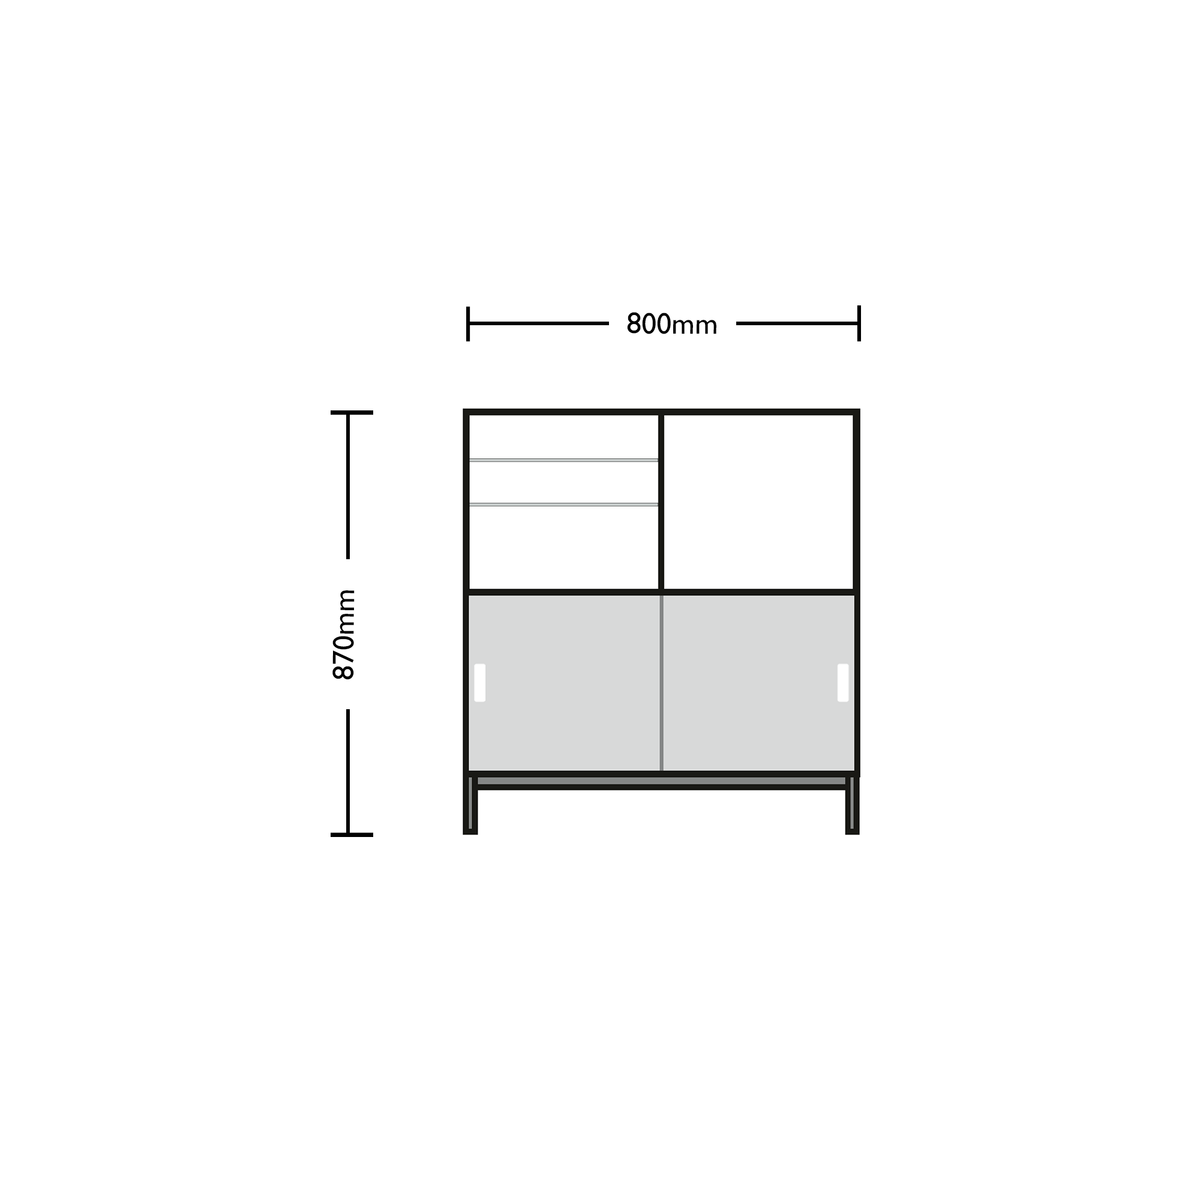 Dimensions for Edsbyn Office Neat Credenza 800m